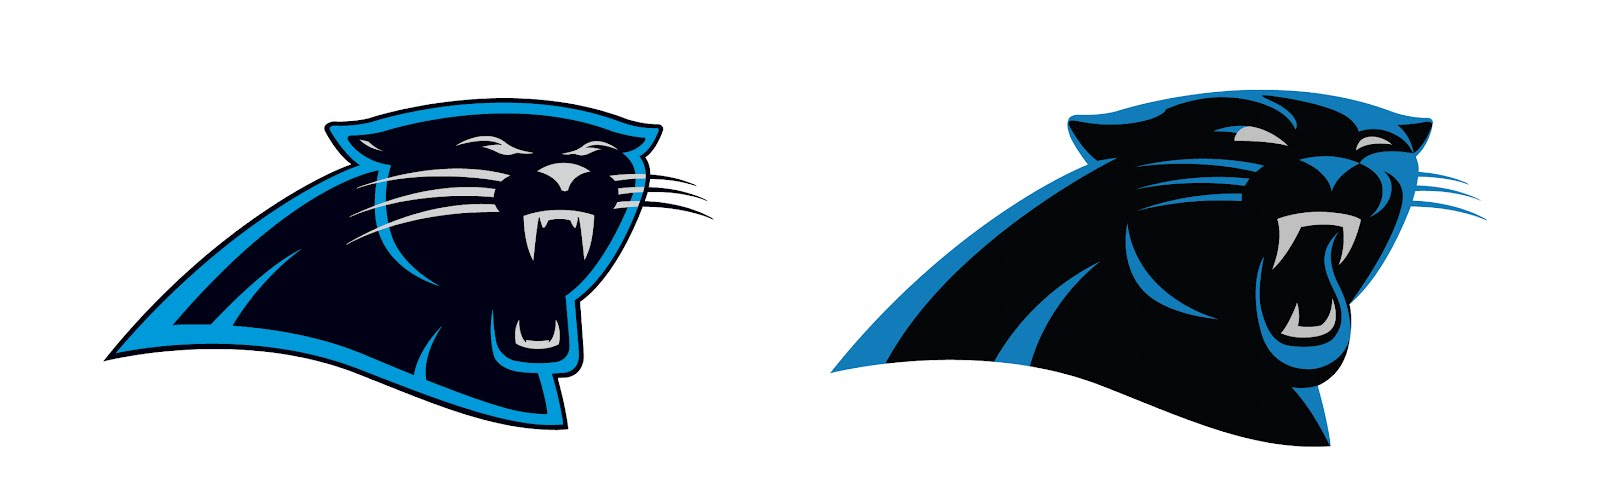 scott says is the new panther jersey worth 100 to you rh scottfowlerobs blogspot com Norfolk Panther Basketball Logo Panther Basketball Silhouette Clip Art